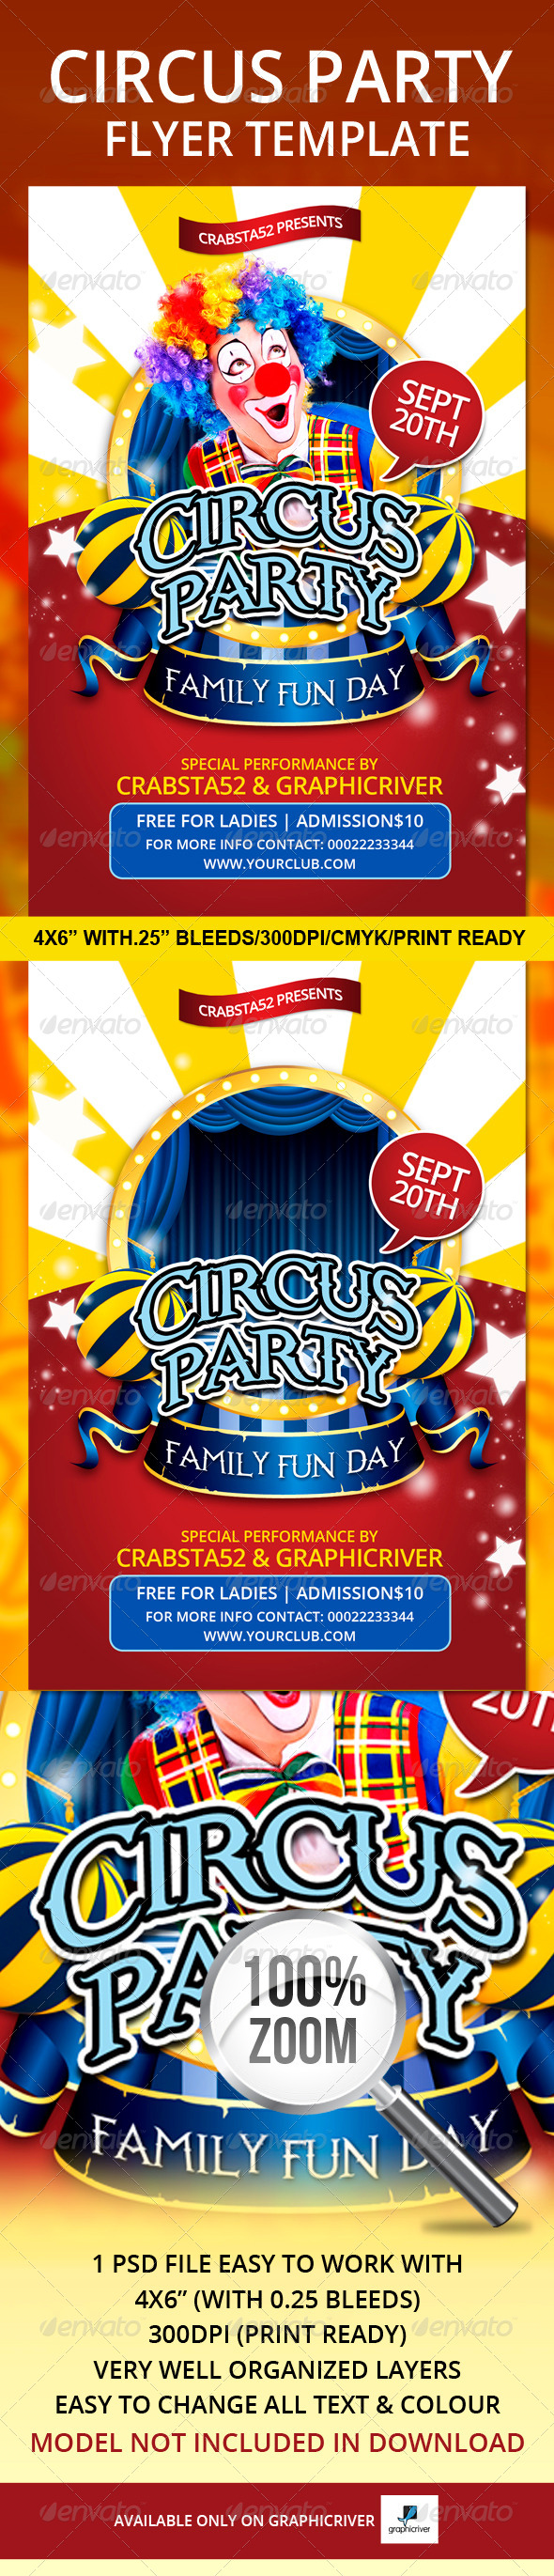 circus party flyer template graphicriver. Black Bedroom Furniture Sets. Home Design Ideas